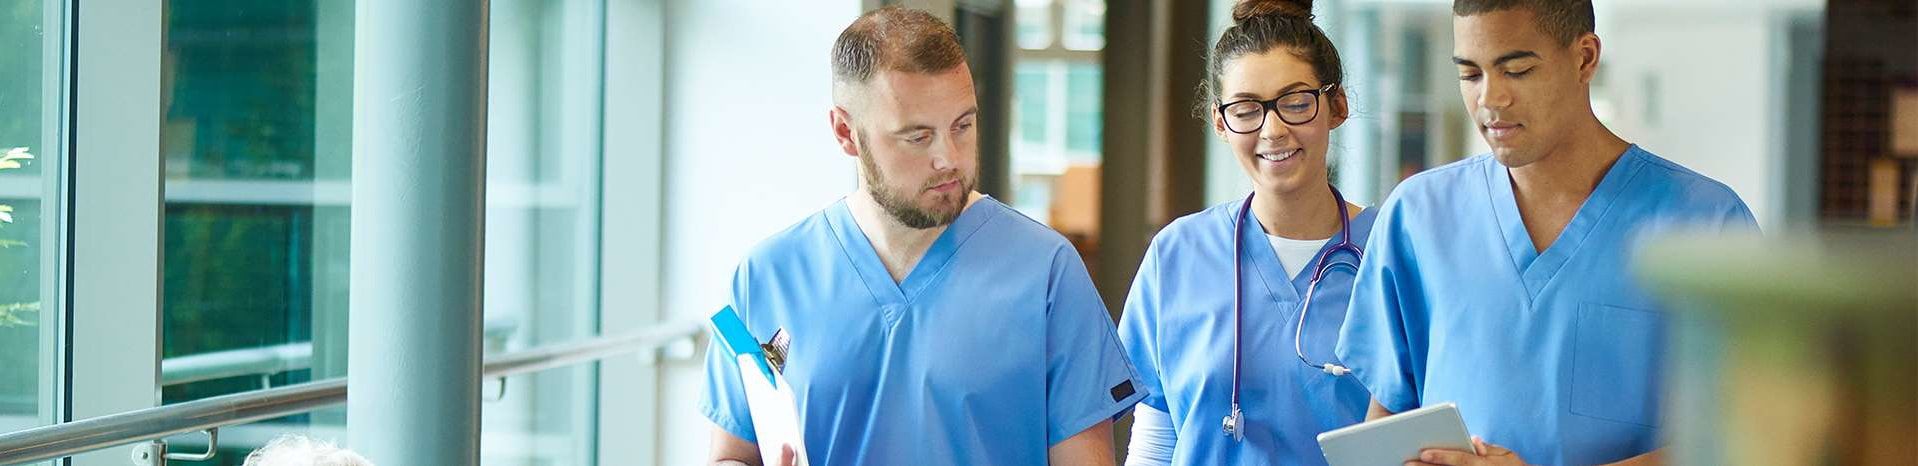 Three healthcare professionals walking in a medical building and looking at a tablet device.